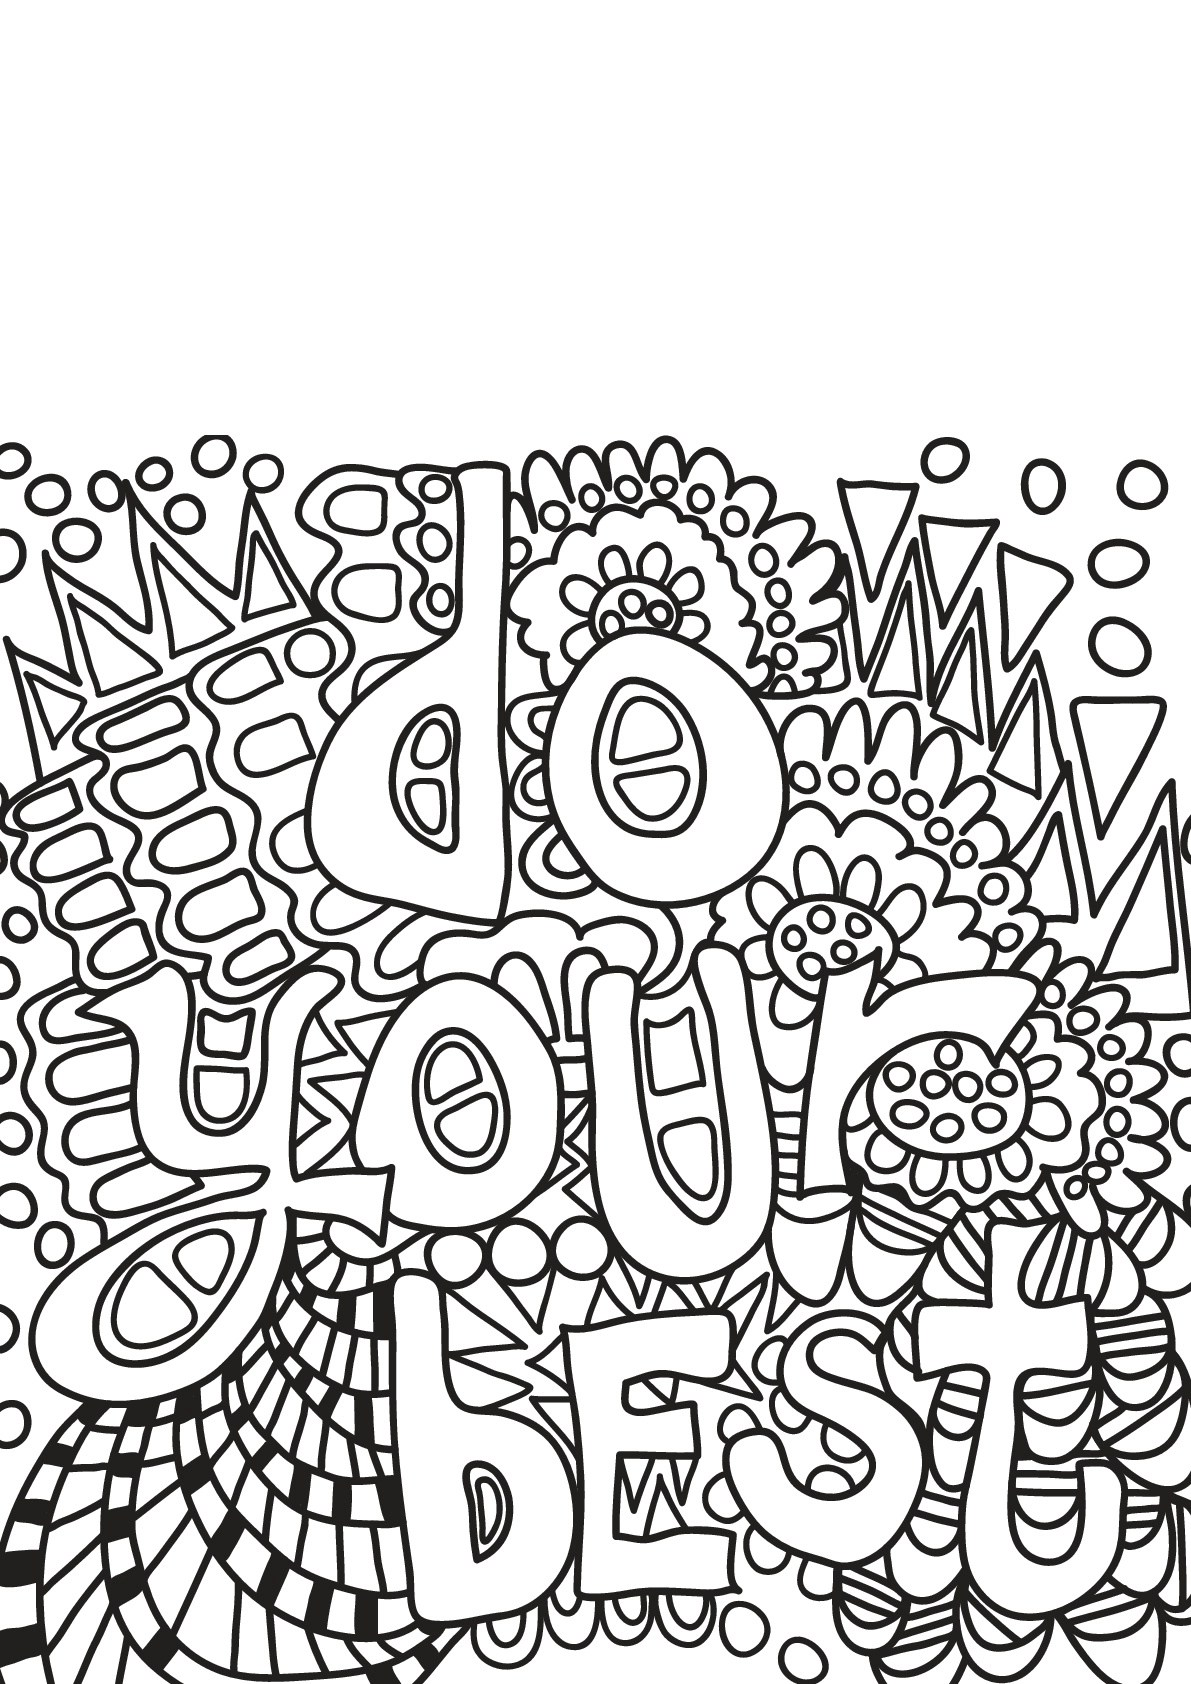 Free book quote 17 - Quotes Adult Coloring Pages   free coloring pages quotes